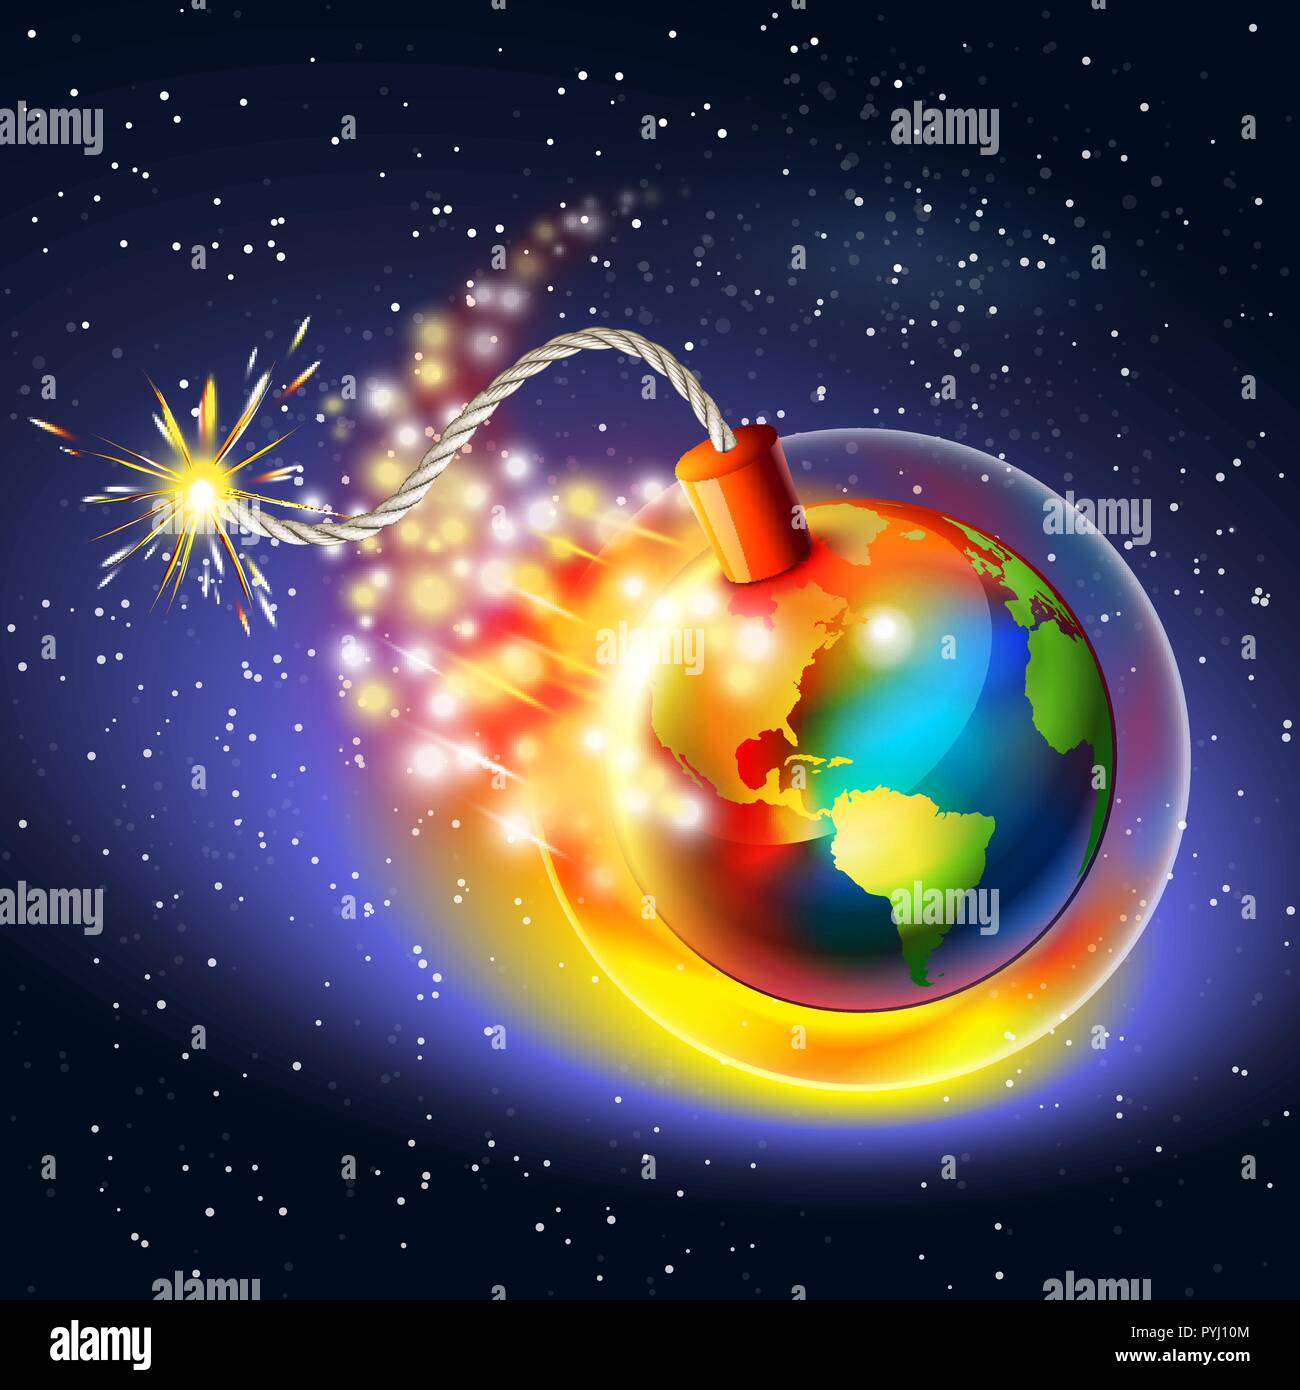 Global warming warning concept. Ozone hole, ultraviolet and greenhouse effect. - Stock Vector